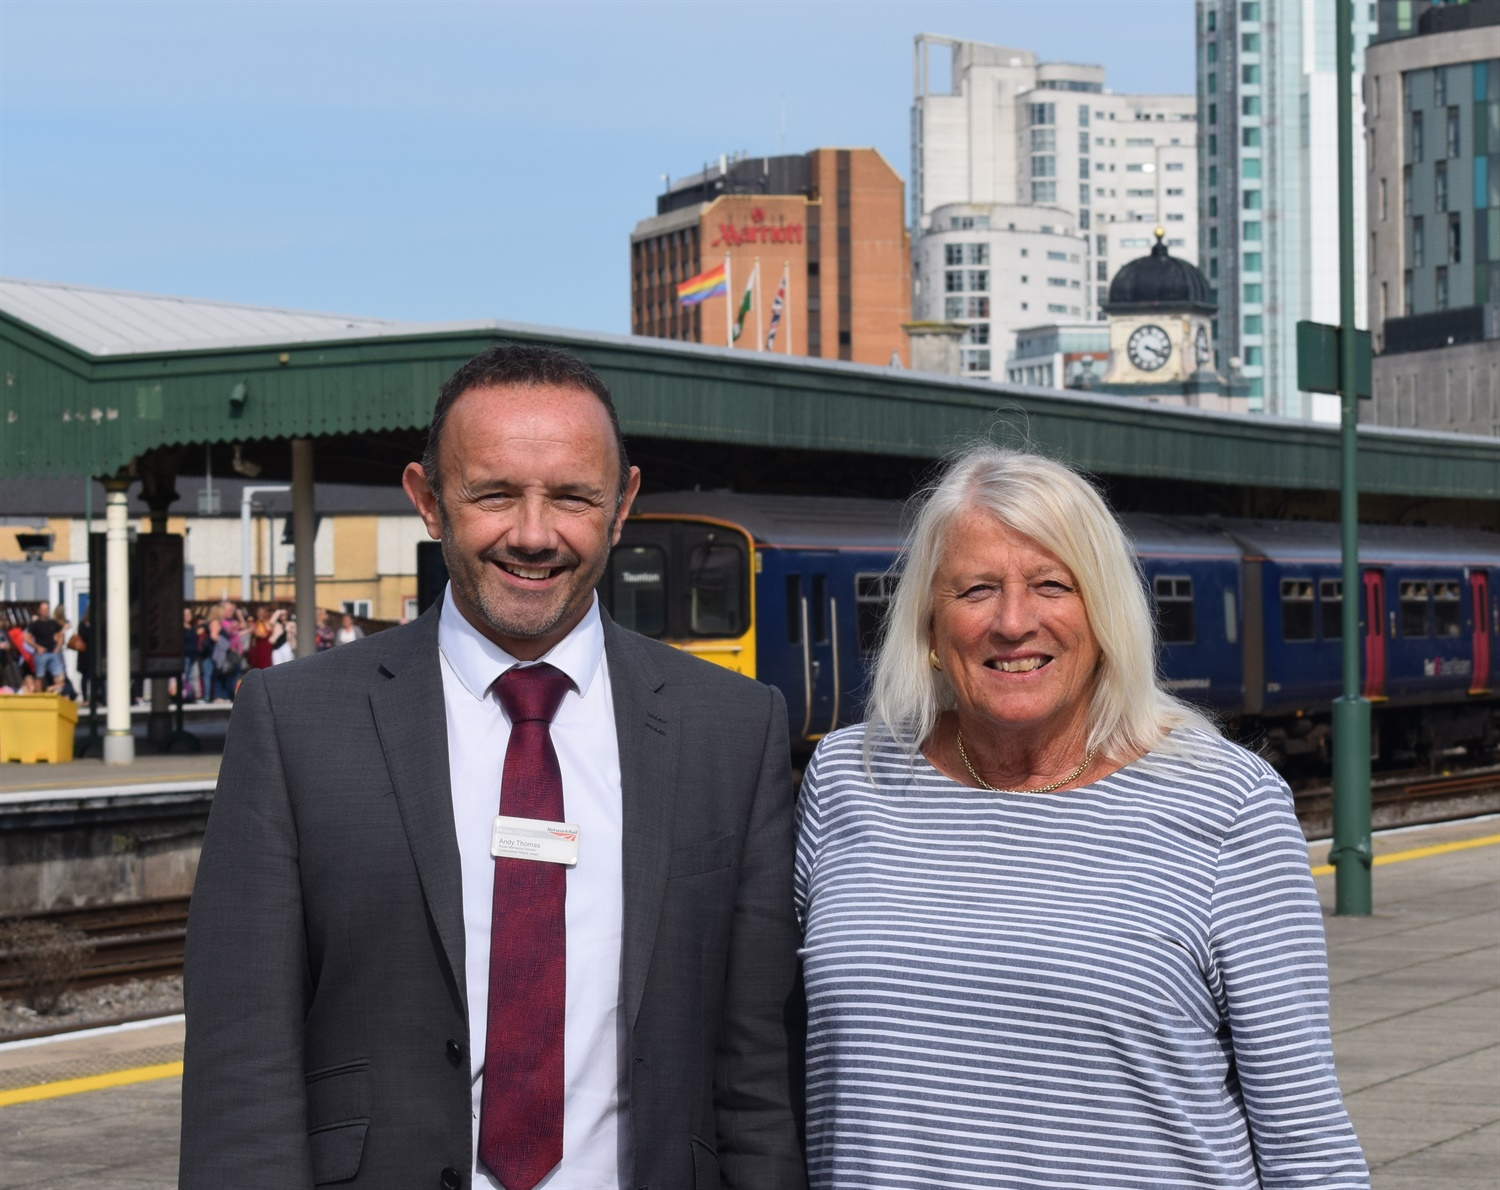 Network Rail appoints chair for new Wales route board